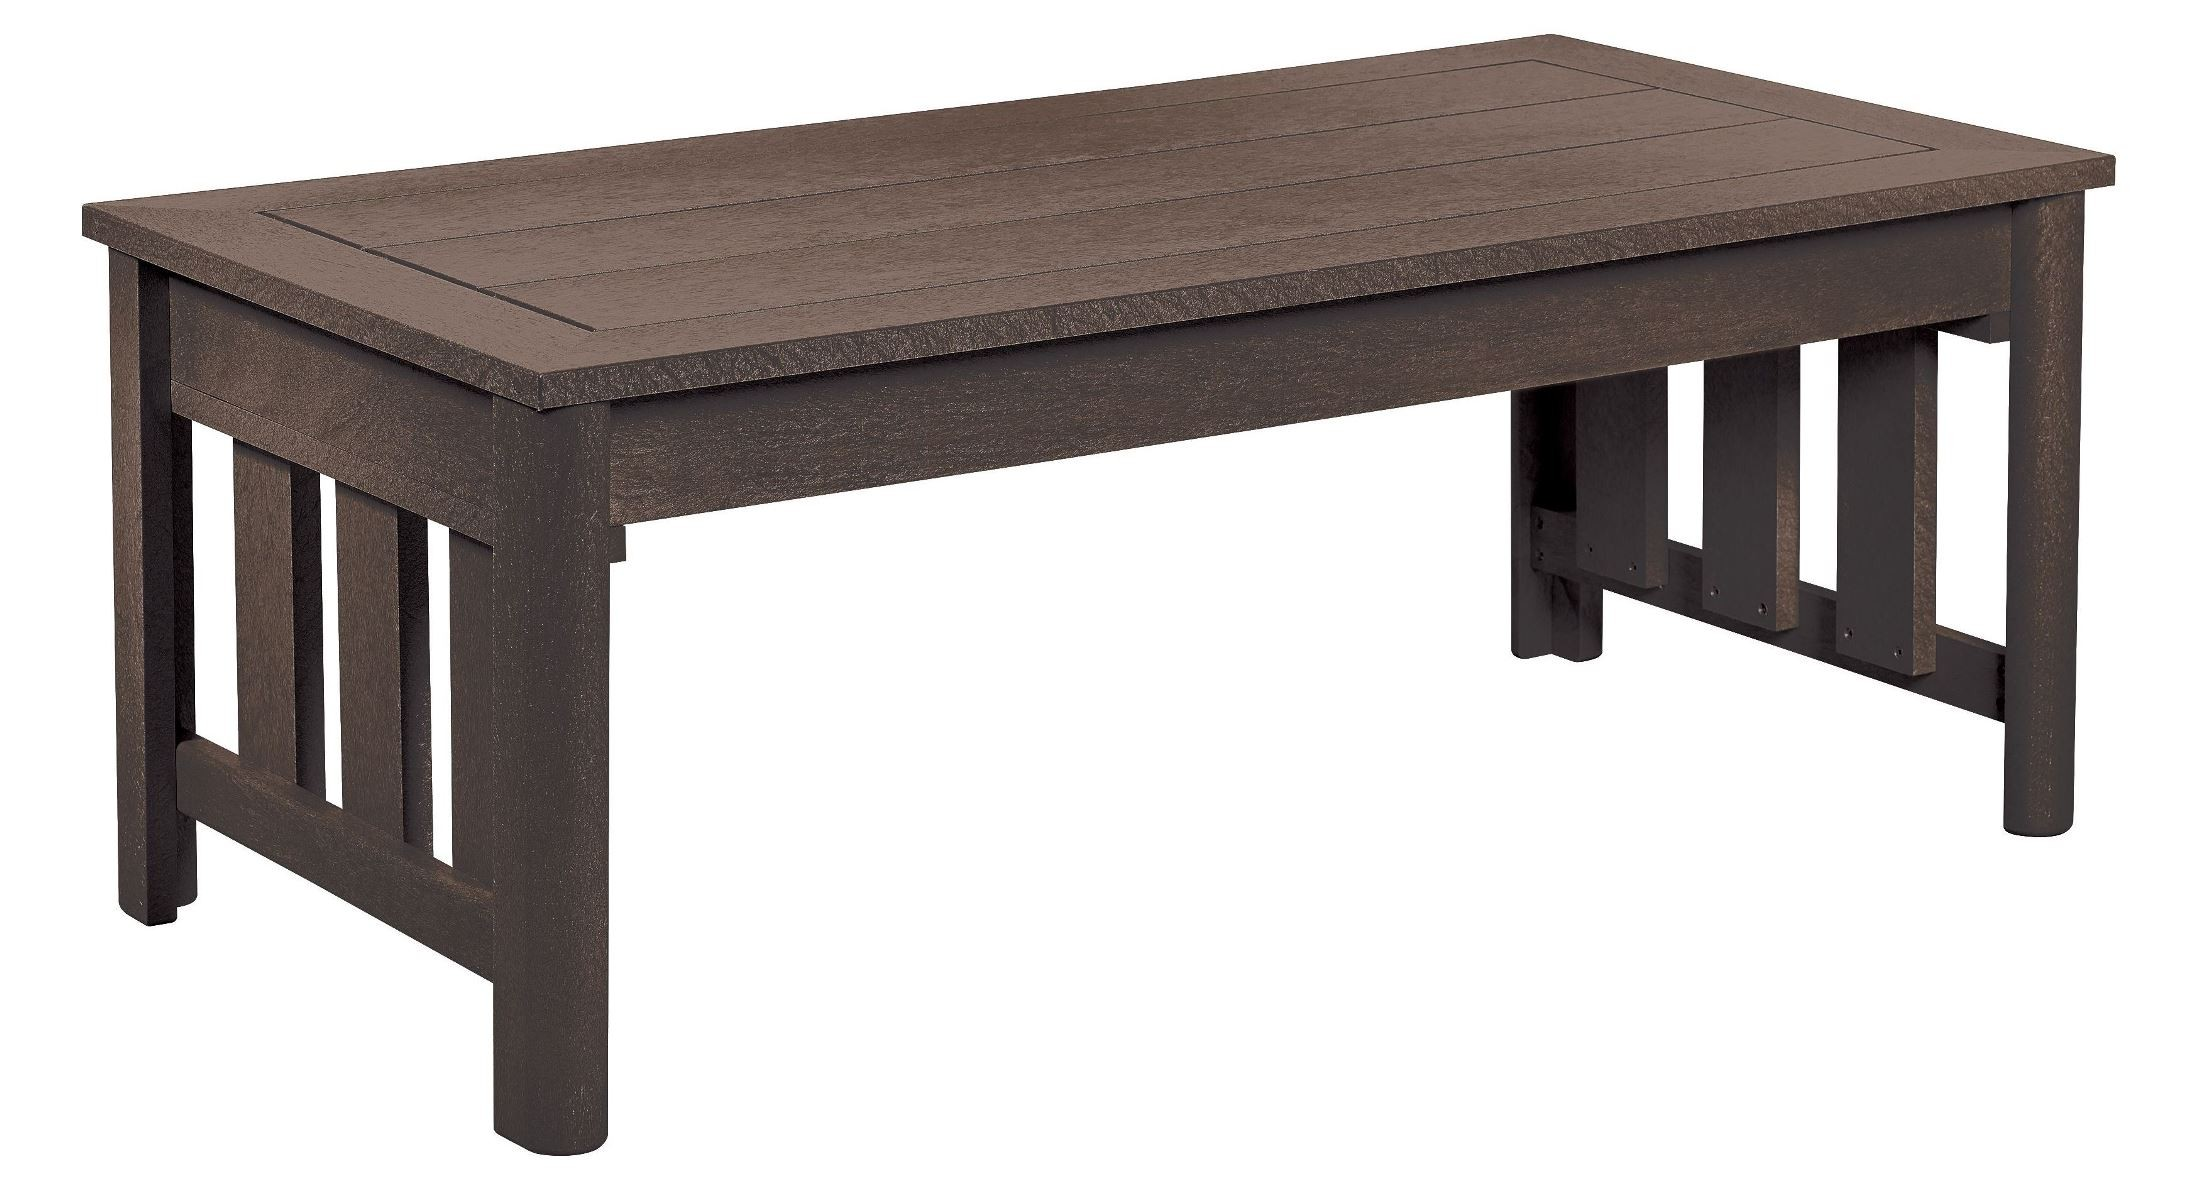 Stratford Chocolate Coffee Table From Cr Plastic Dst147 16 Coleman Furniture